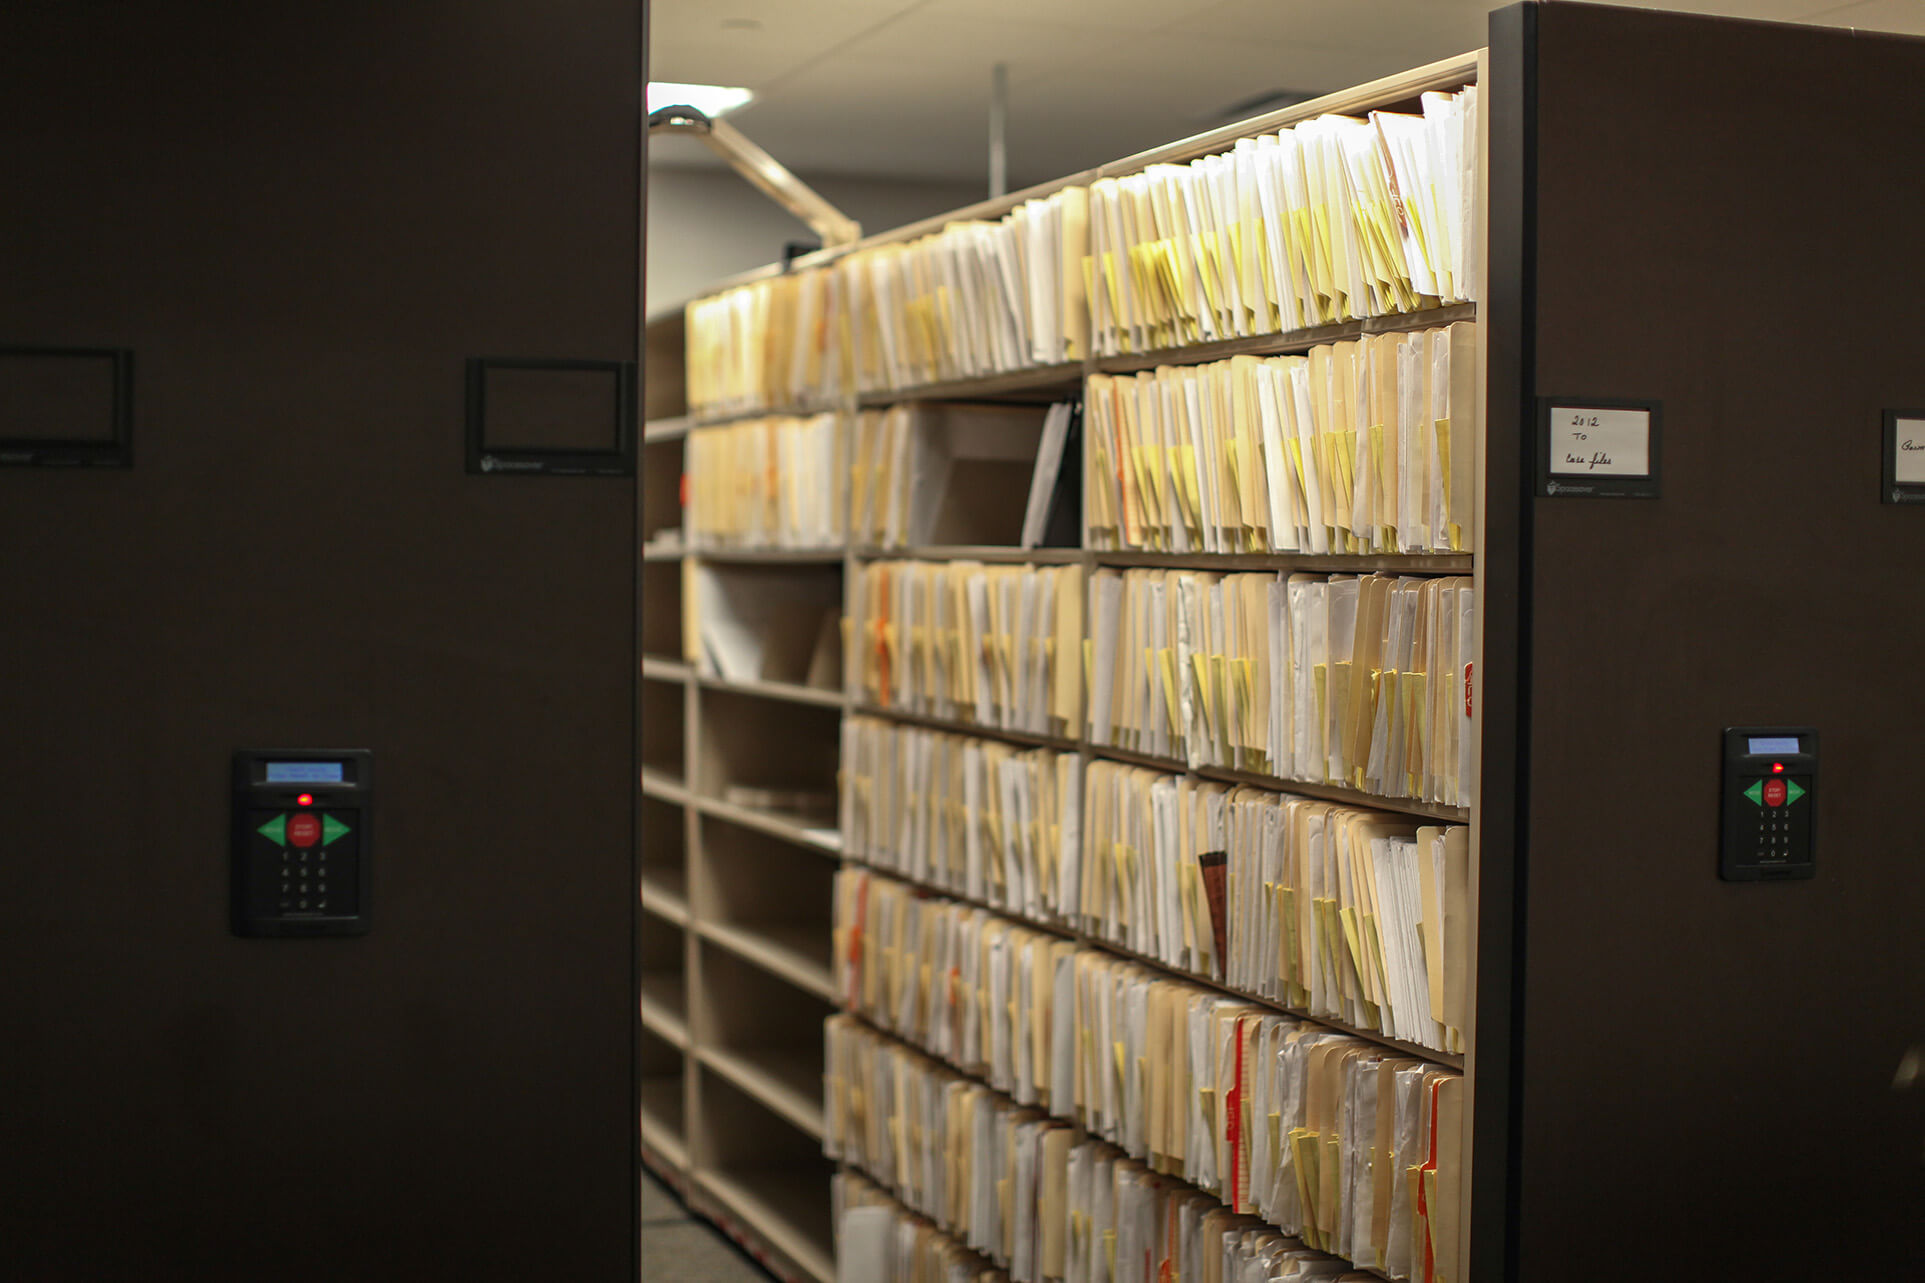 Secure record storage at Bensalem Police Department